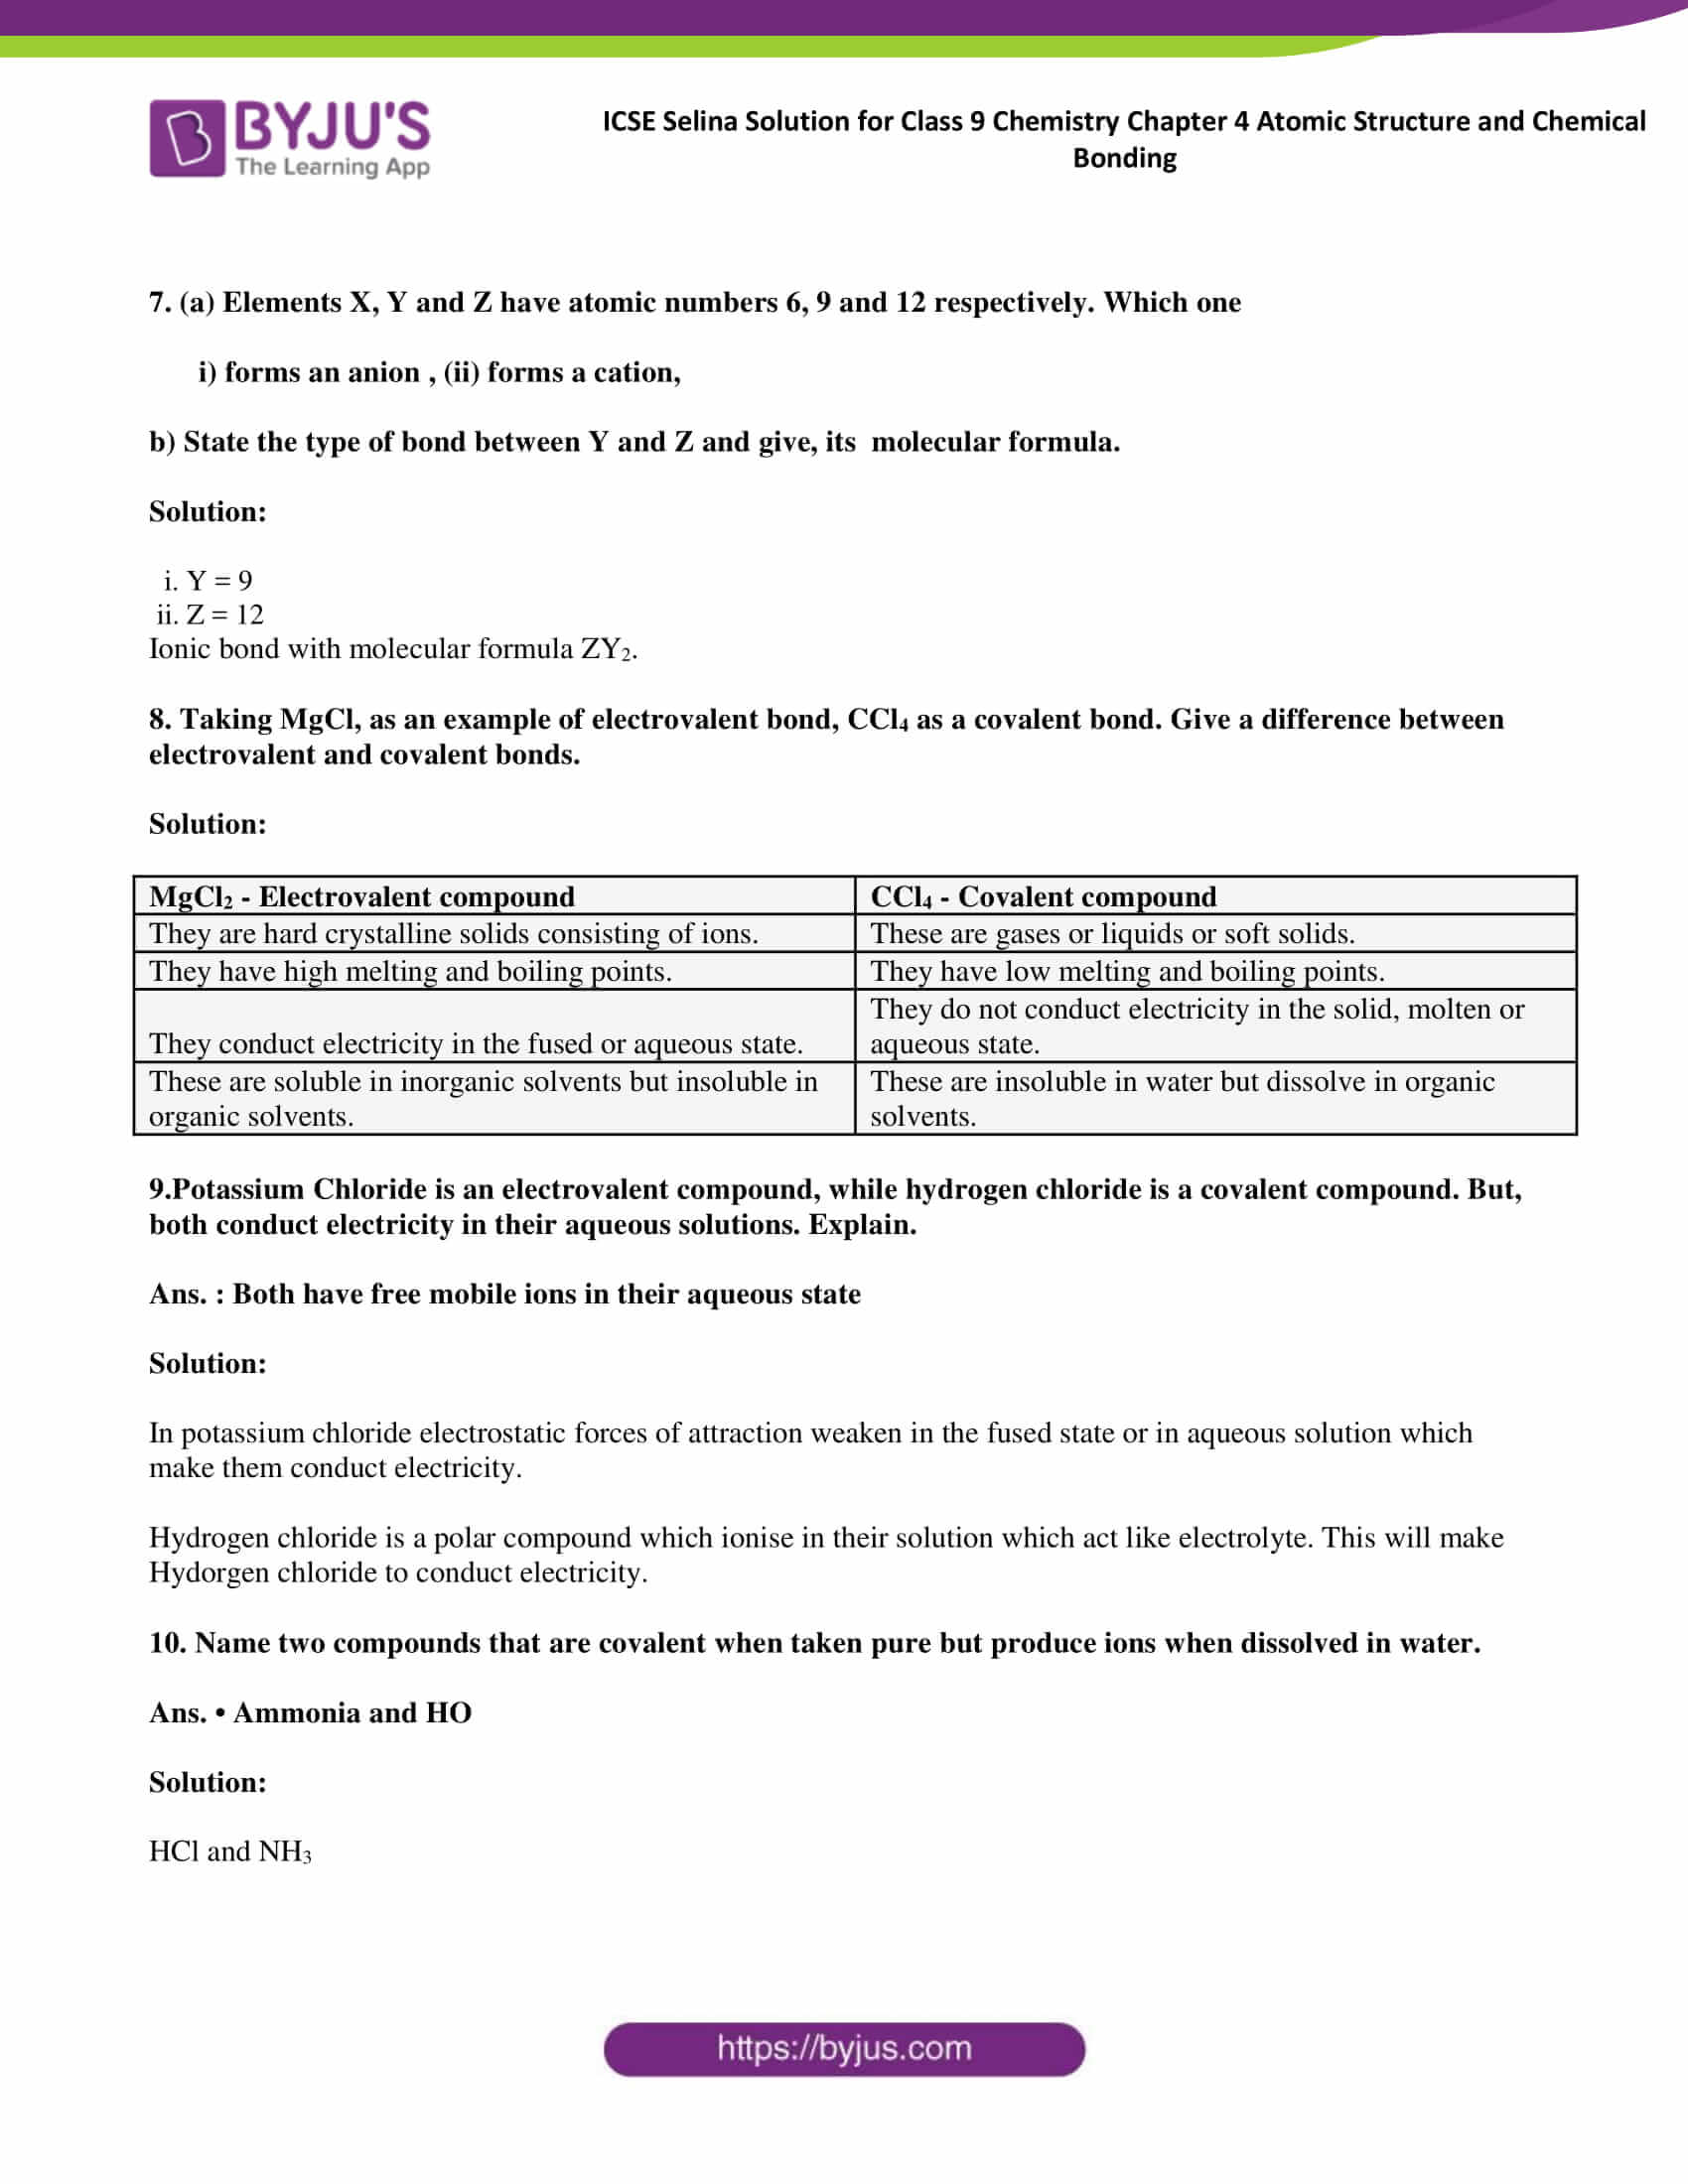 ICSE Selina Solution for class 9 Chemistry Chapter 4 Ex part 26